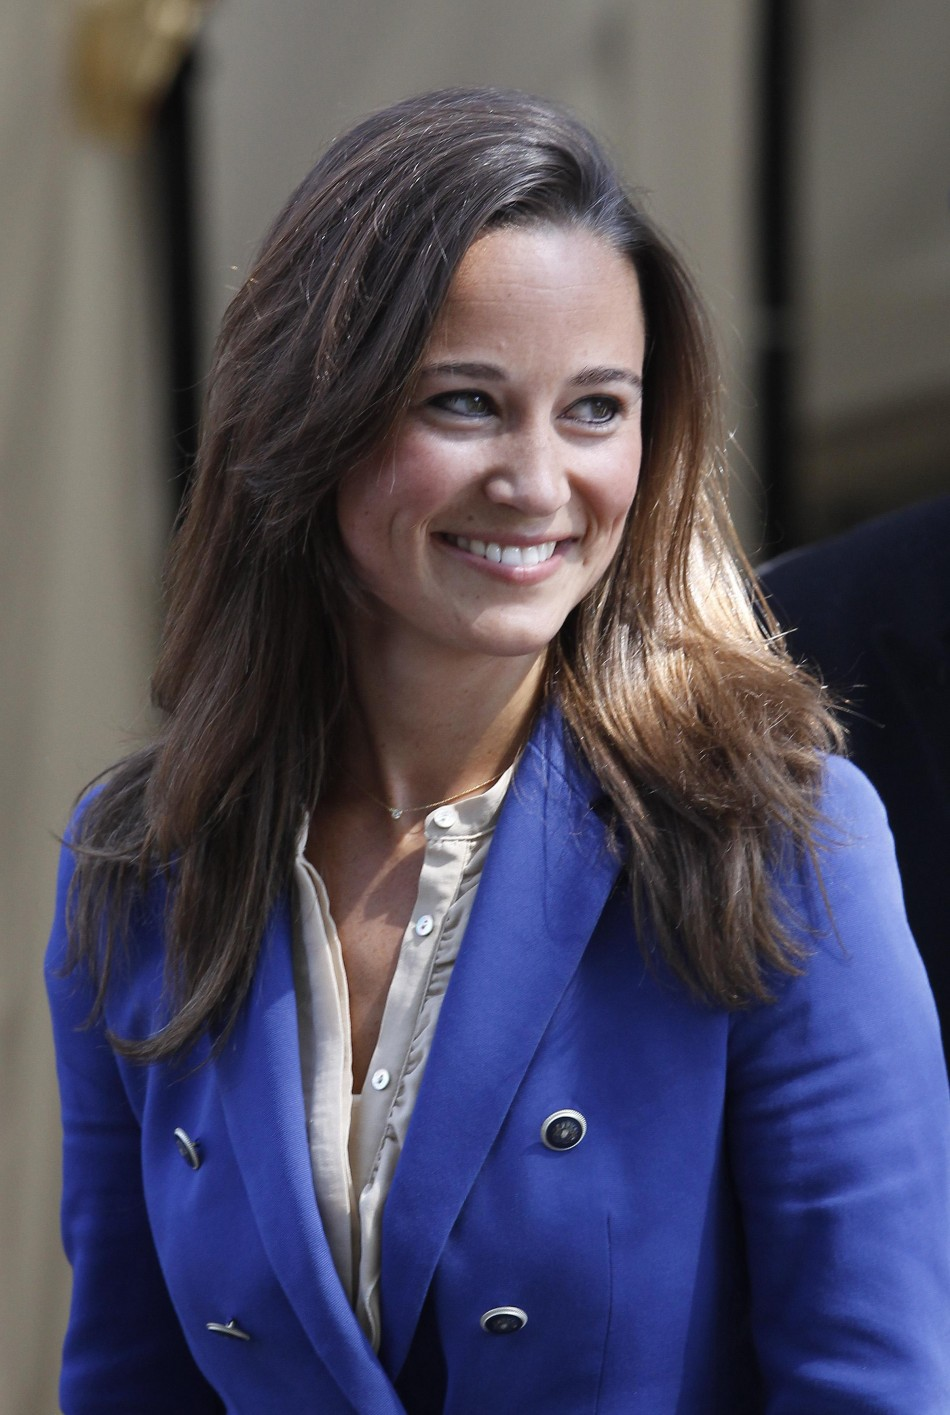 Meet Pippa Middleton: the world's new favorite bachelorette.